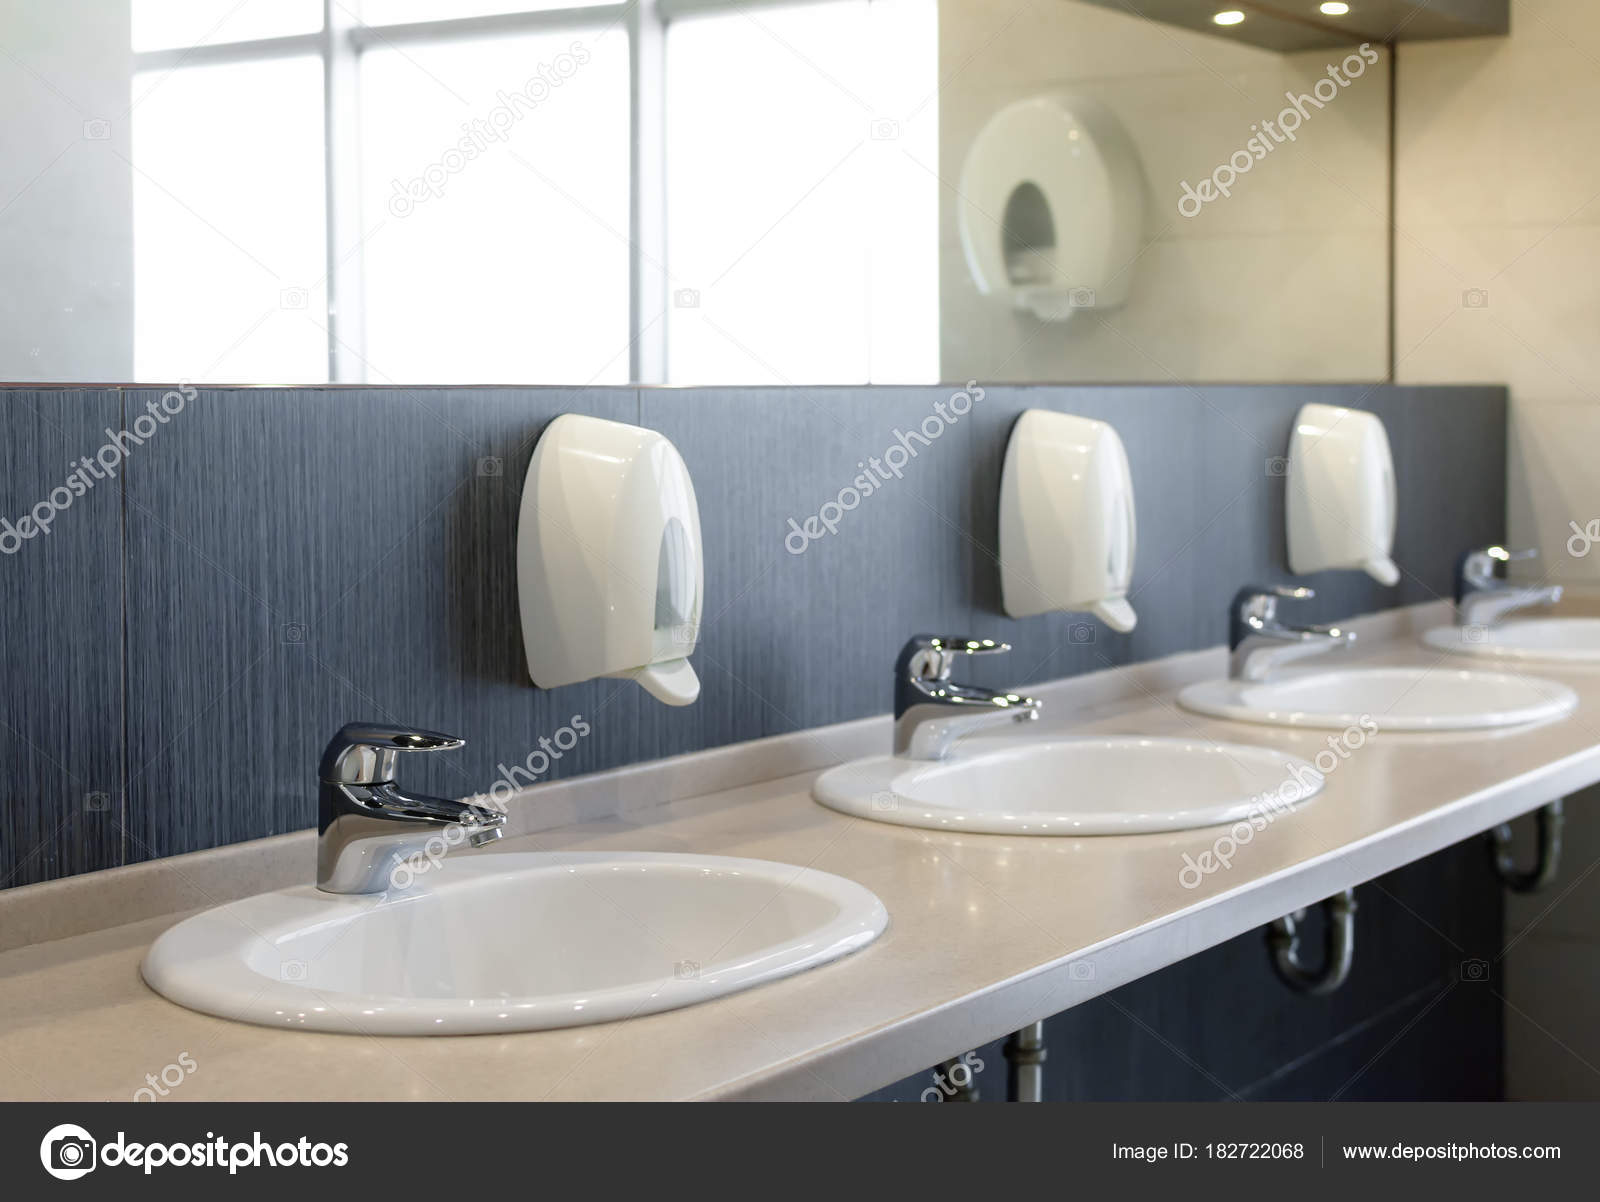 public restroom with sinks faucets and mirror u2014 stock photo public bathroom sink20 sink